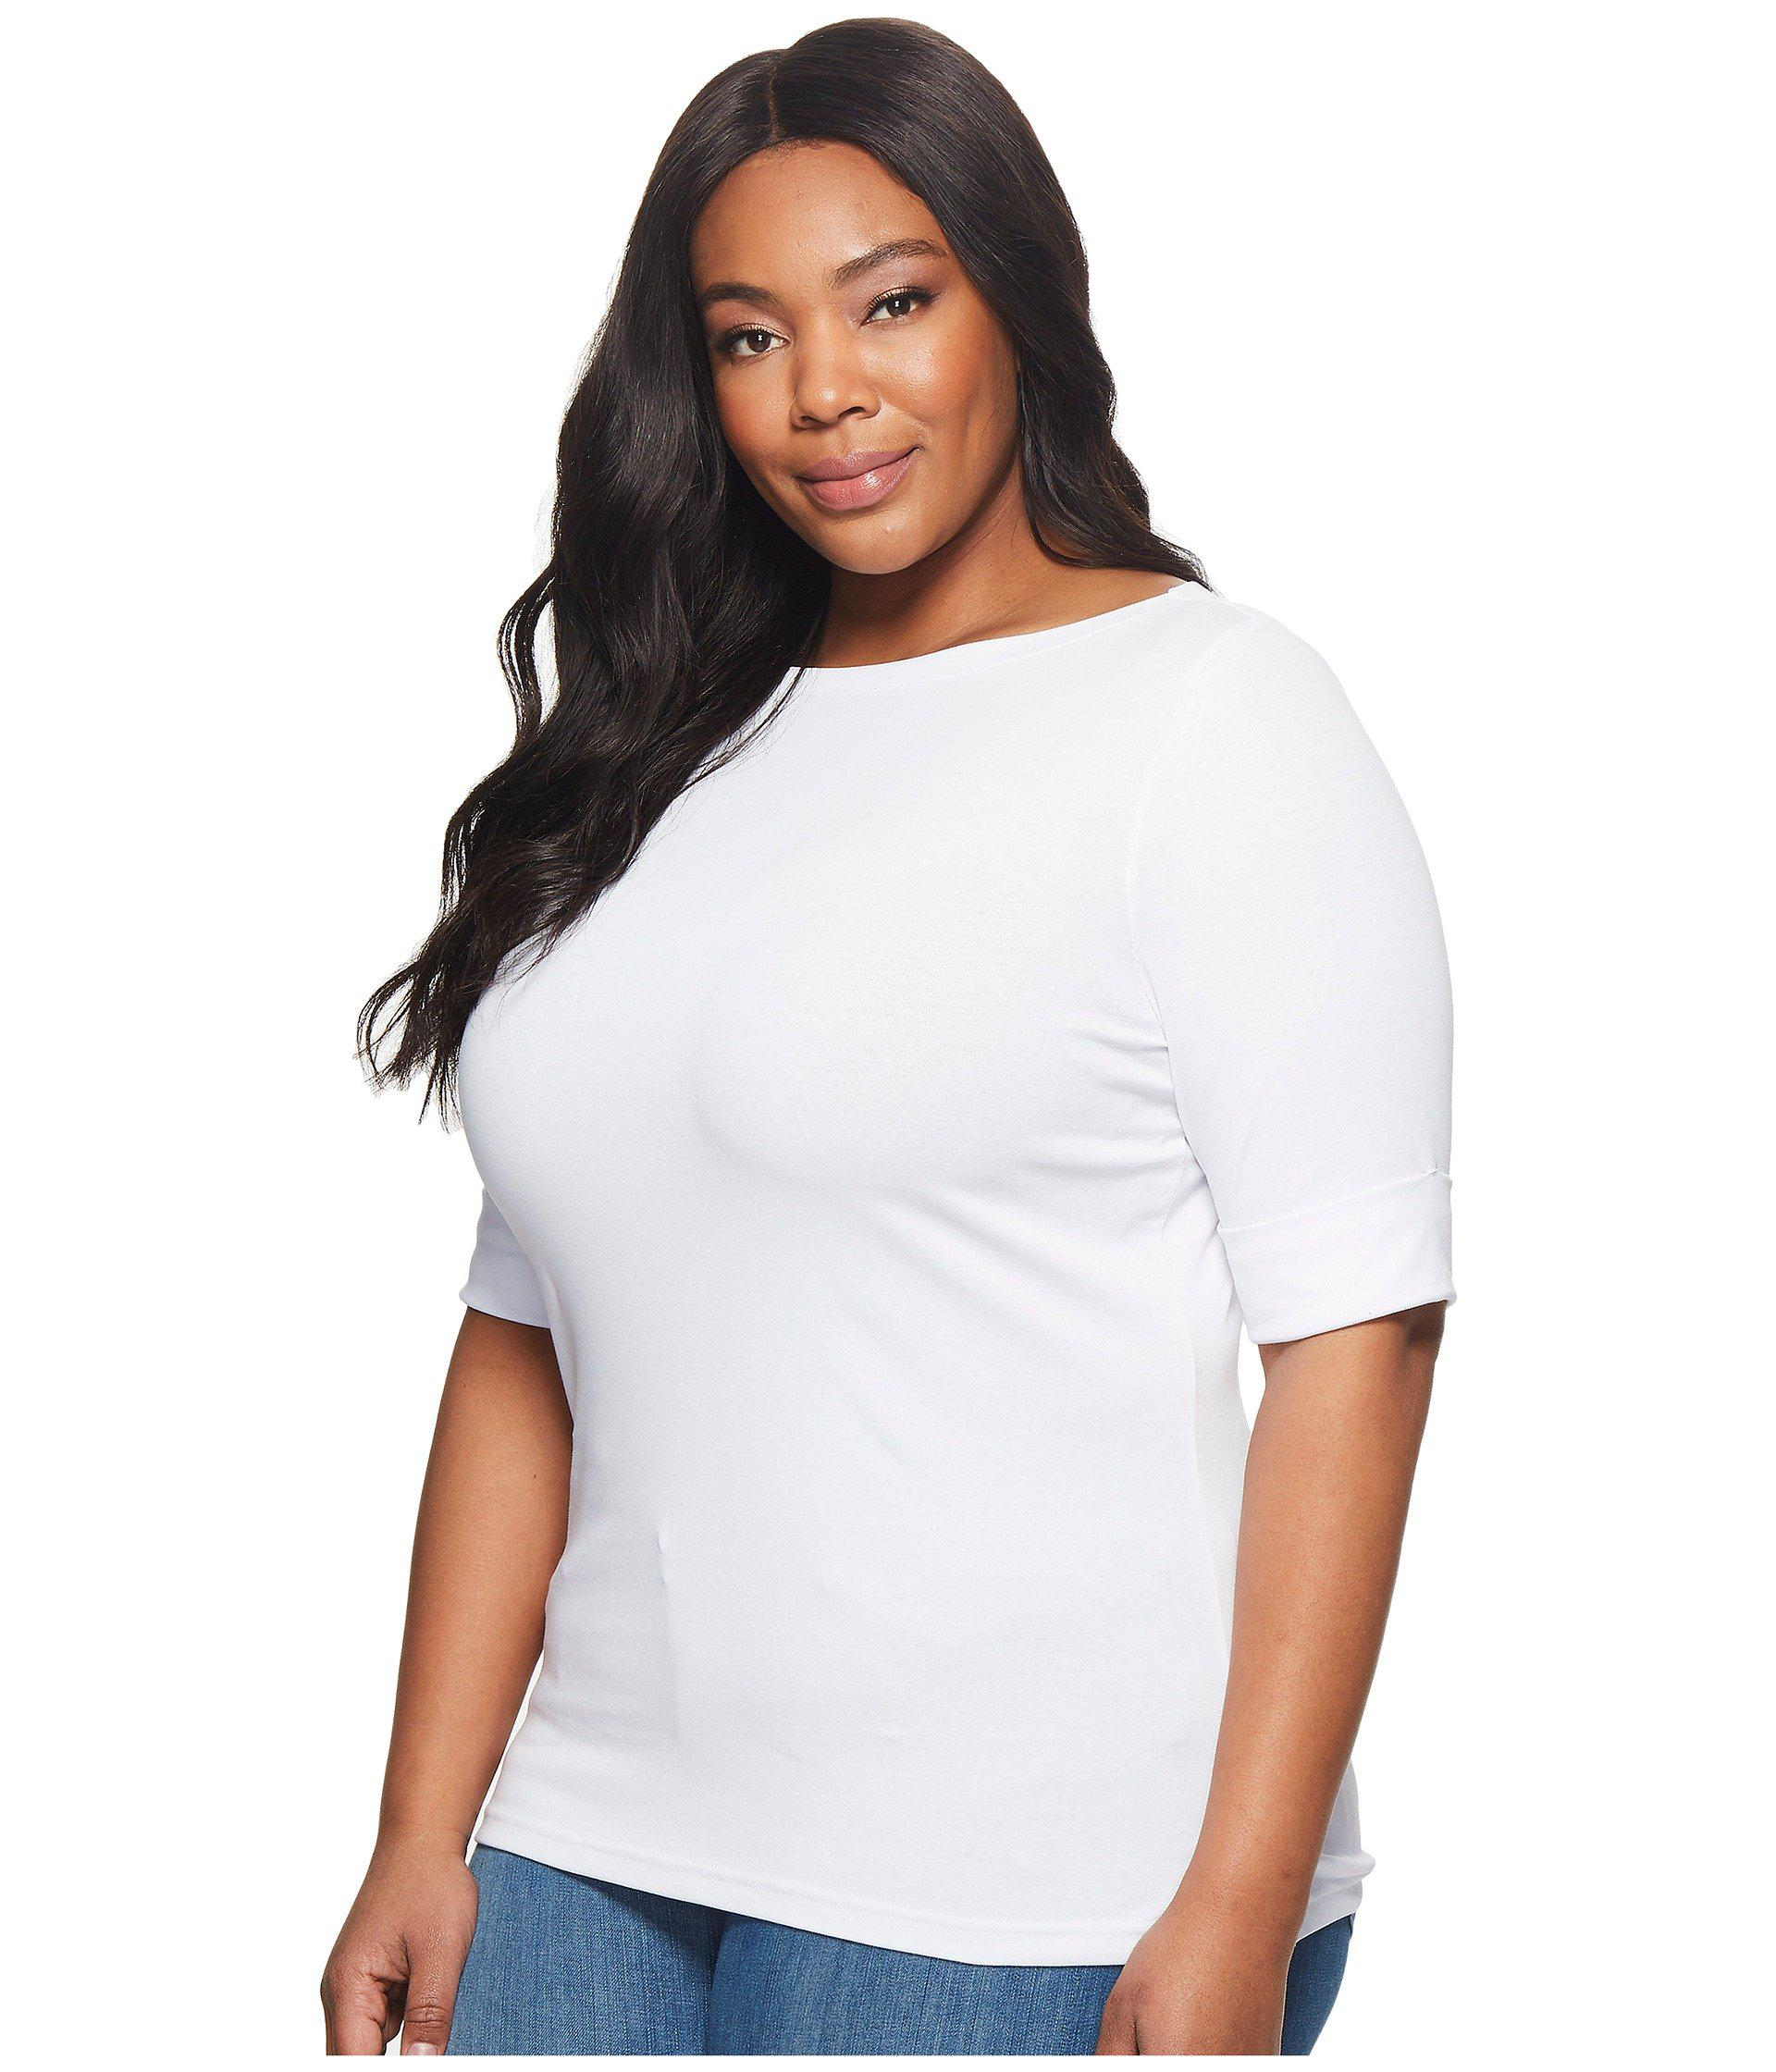 cff54427a5c Lyst - Lauren by Ralph Lauren Plus Size Stretch Cotton Boat Neck Tee (navy) Women s  T Shirt in White